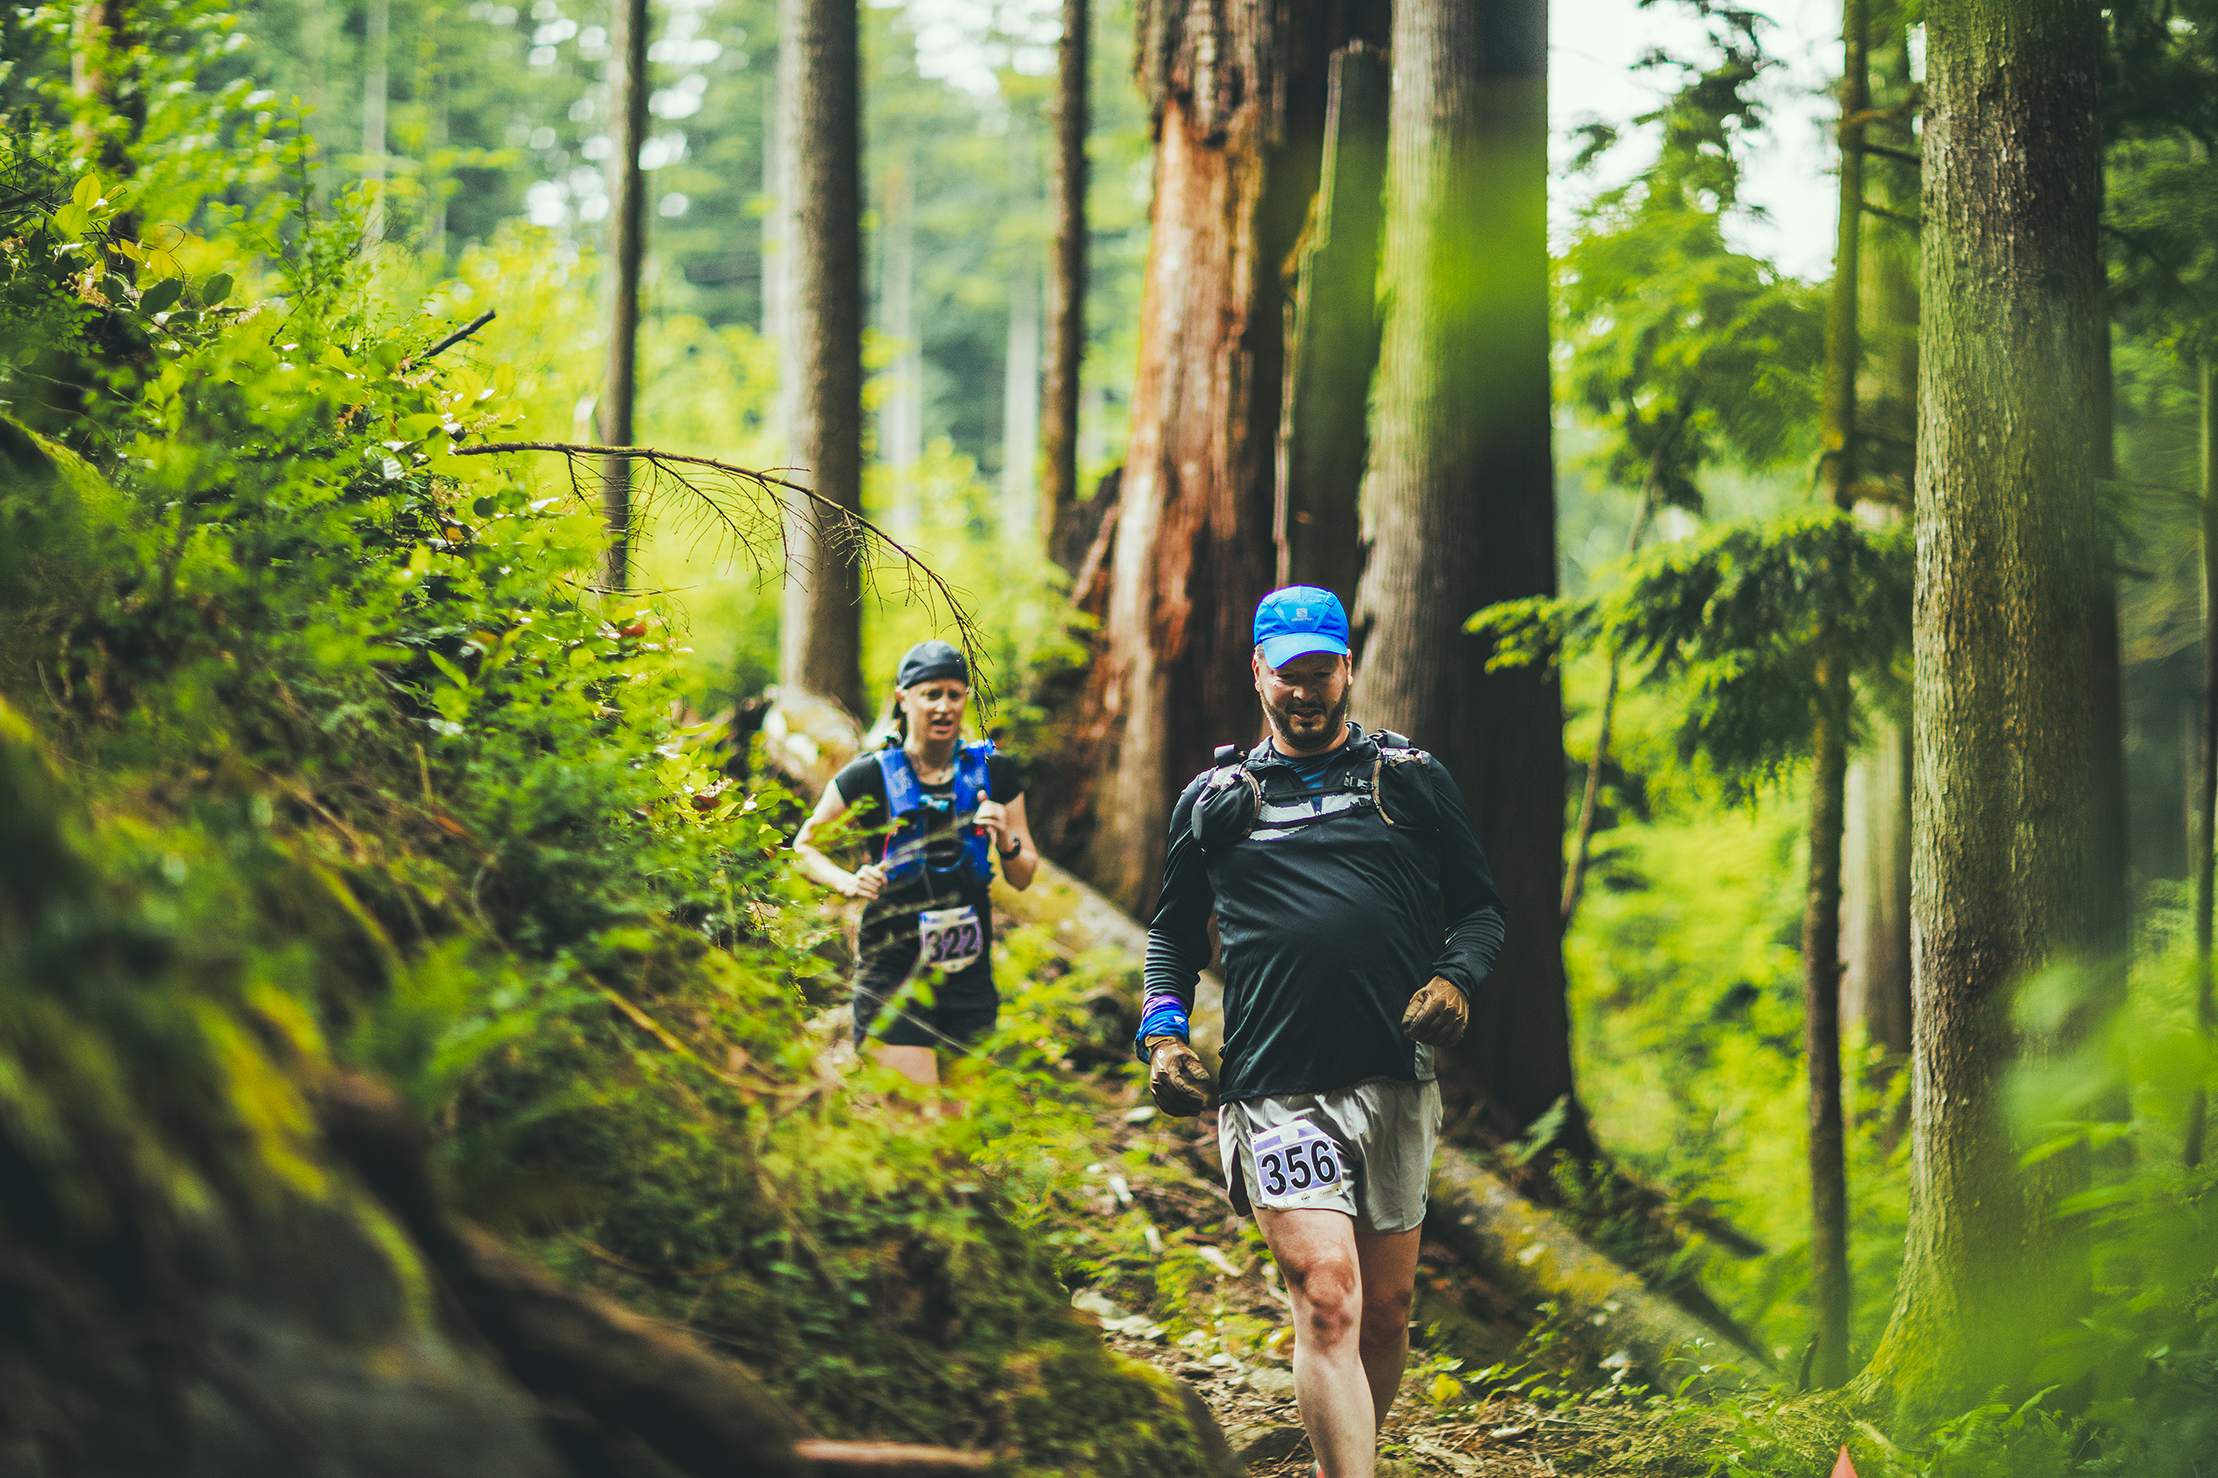 Fraser Valley Trail Races - Bear Mountain - IMG_1555 by Brice Ferre Studio - Vancouver Portrait Adventure and Athlete Photographer.jpg